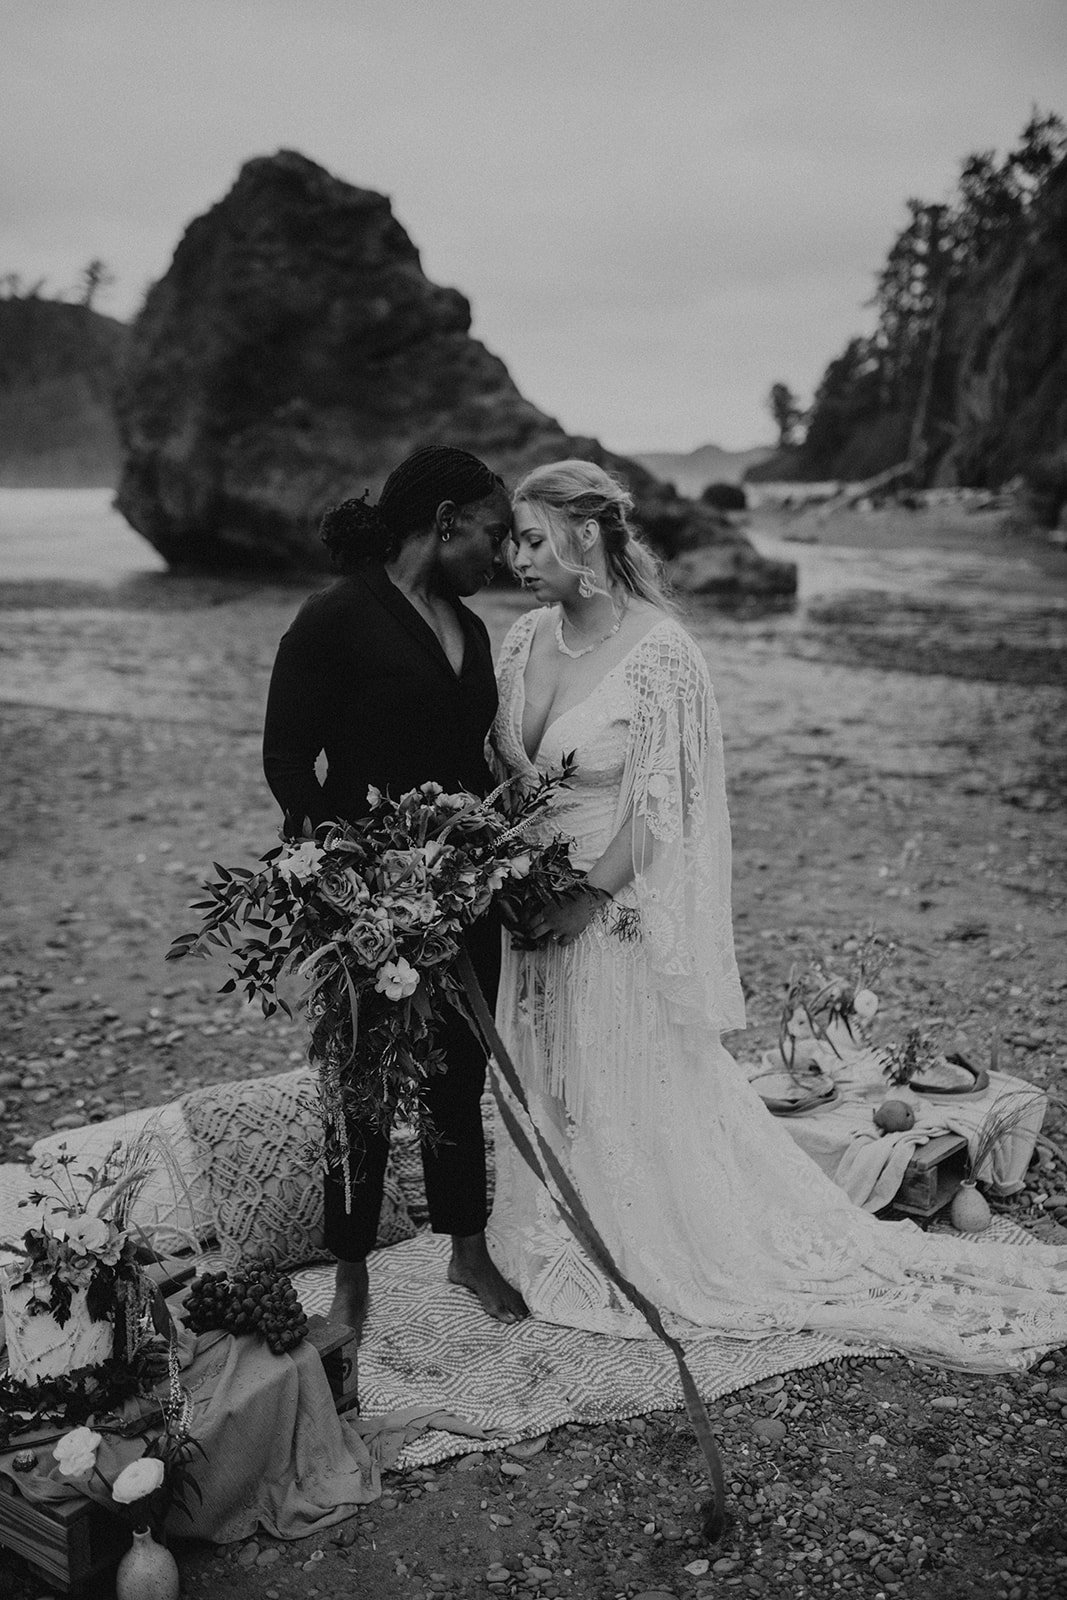 Ruby_Beach_Styled_Elopement_-_Run_Away_with_Me_Elopement_Collective_-_Kamra_Fuller_Photography_-_Portraits-140